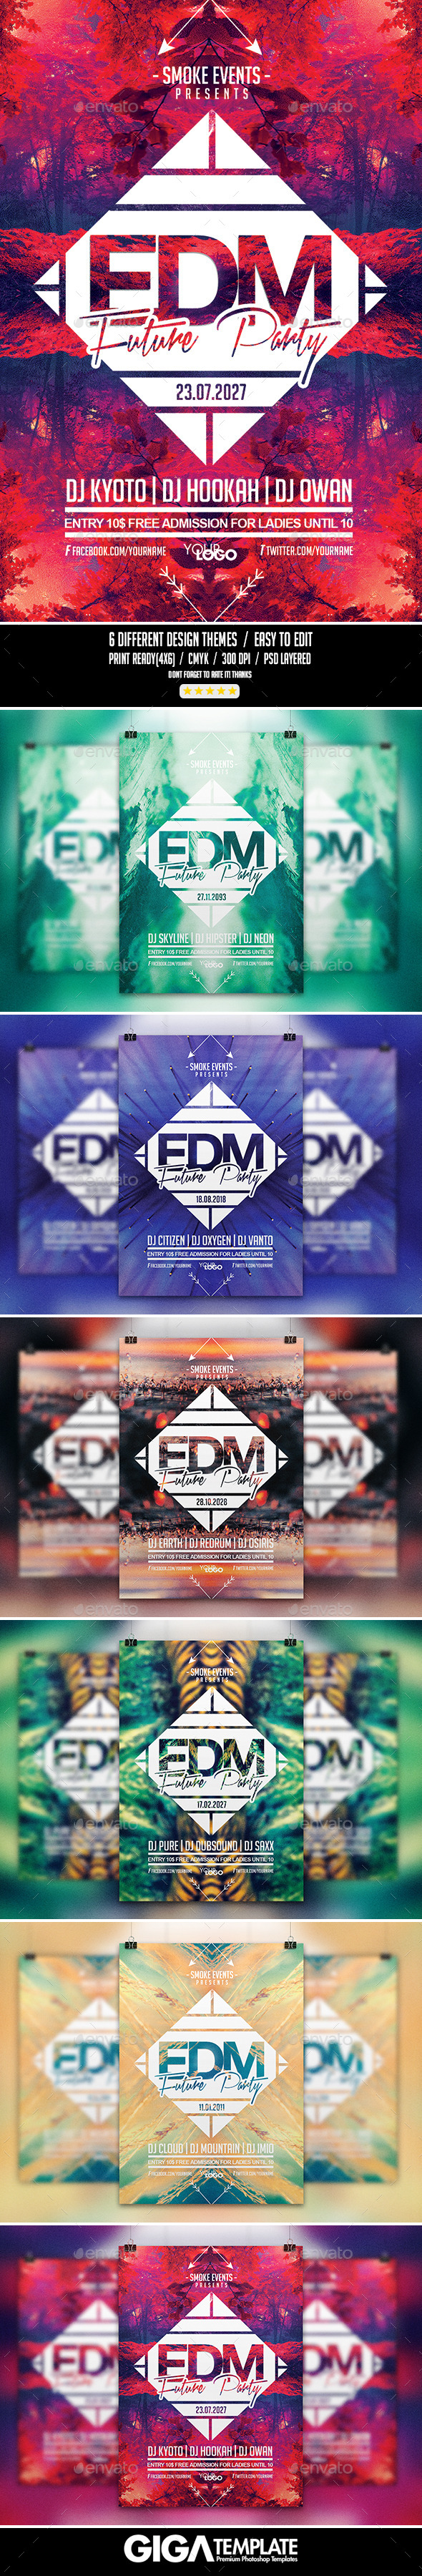 GraphicRiver EDM Futuristic Music Flyer PSD Template 10755323